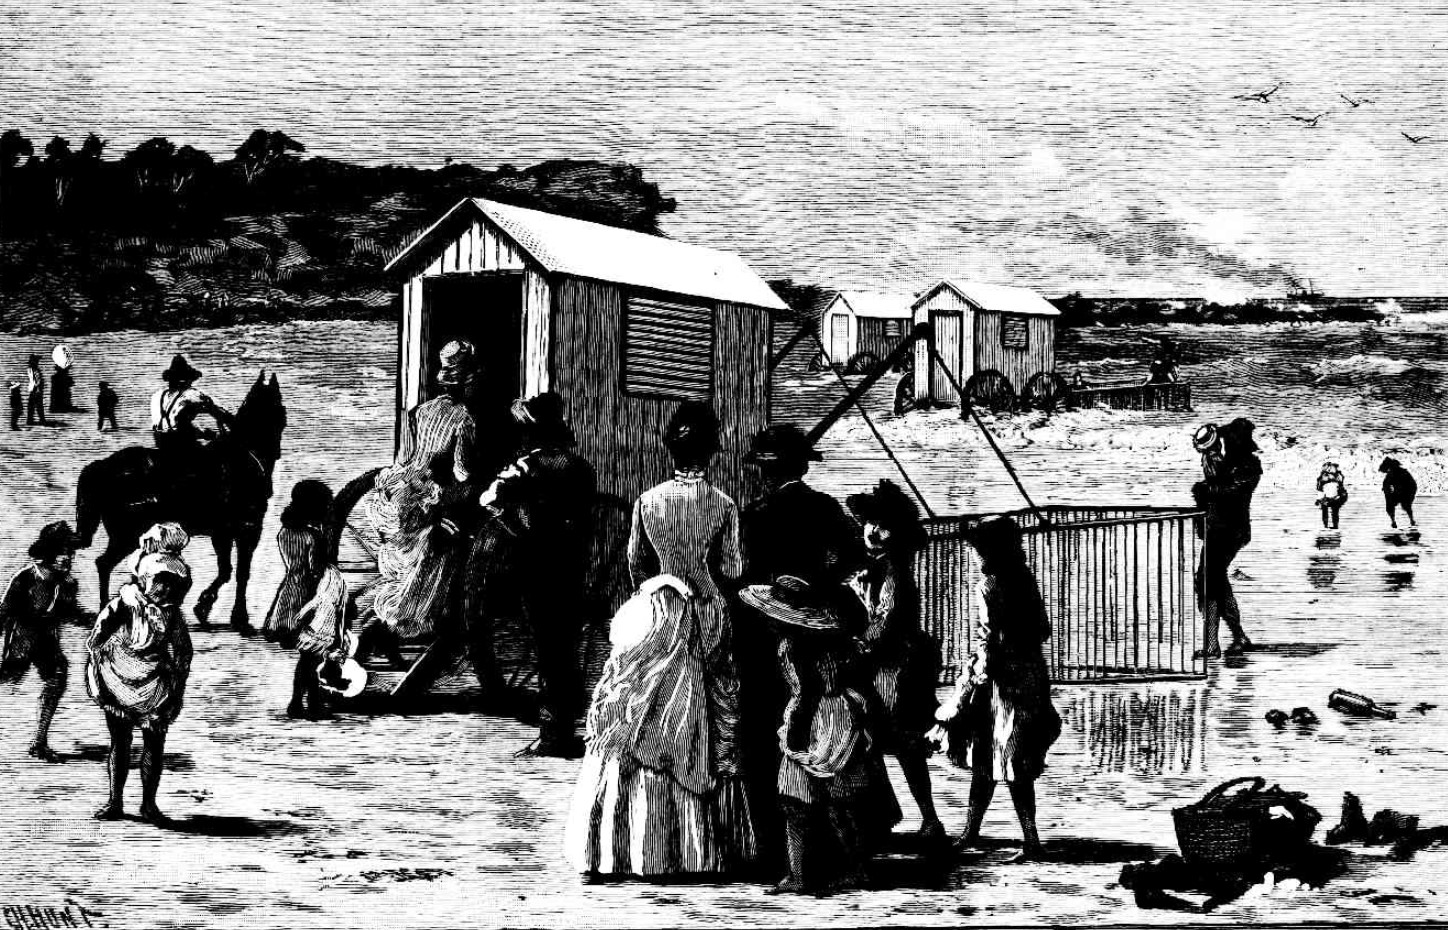 Sea Bathing in the Victorian Era